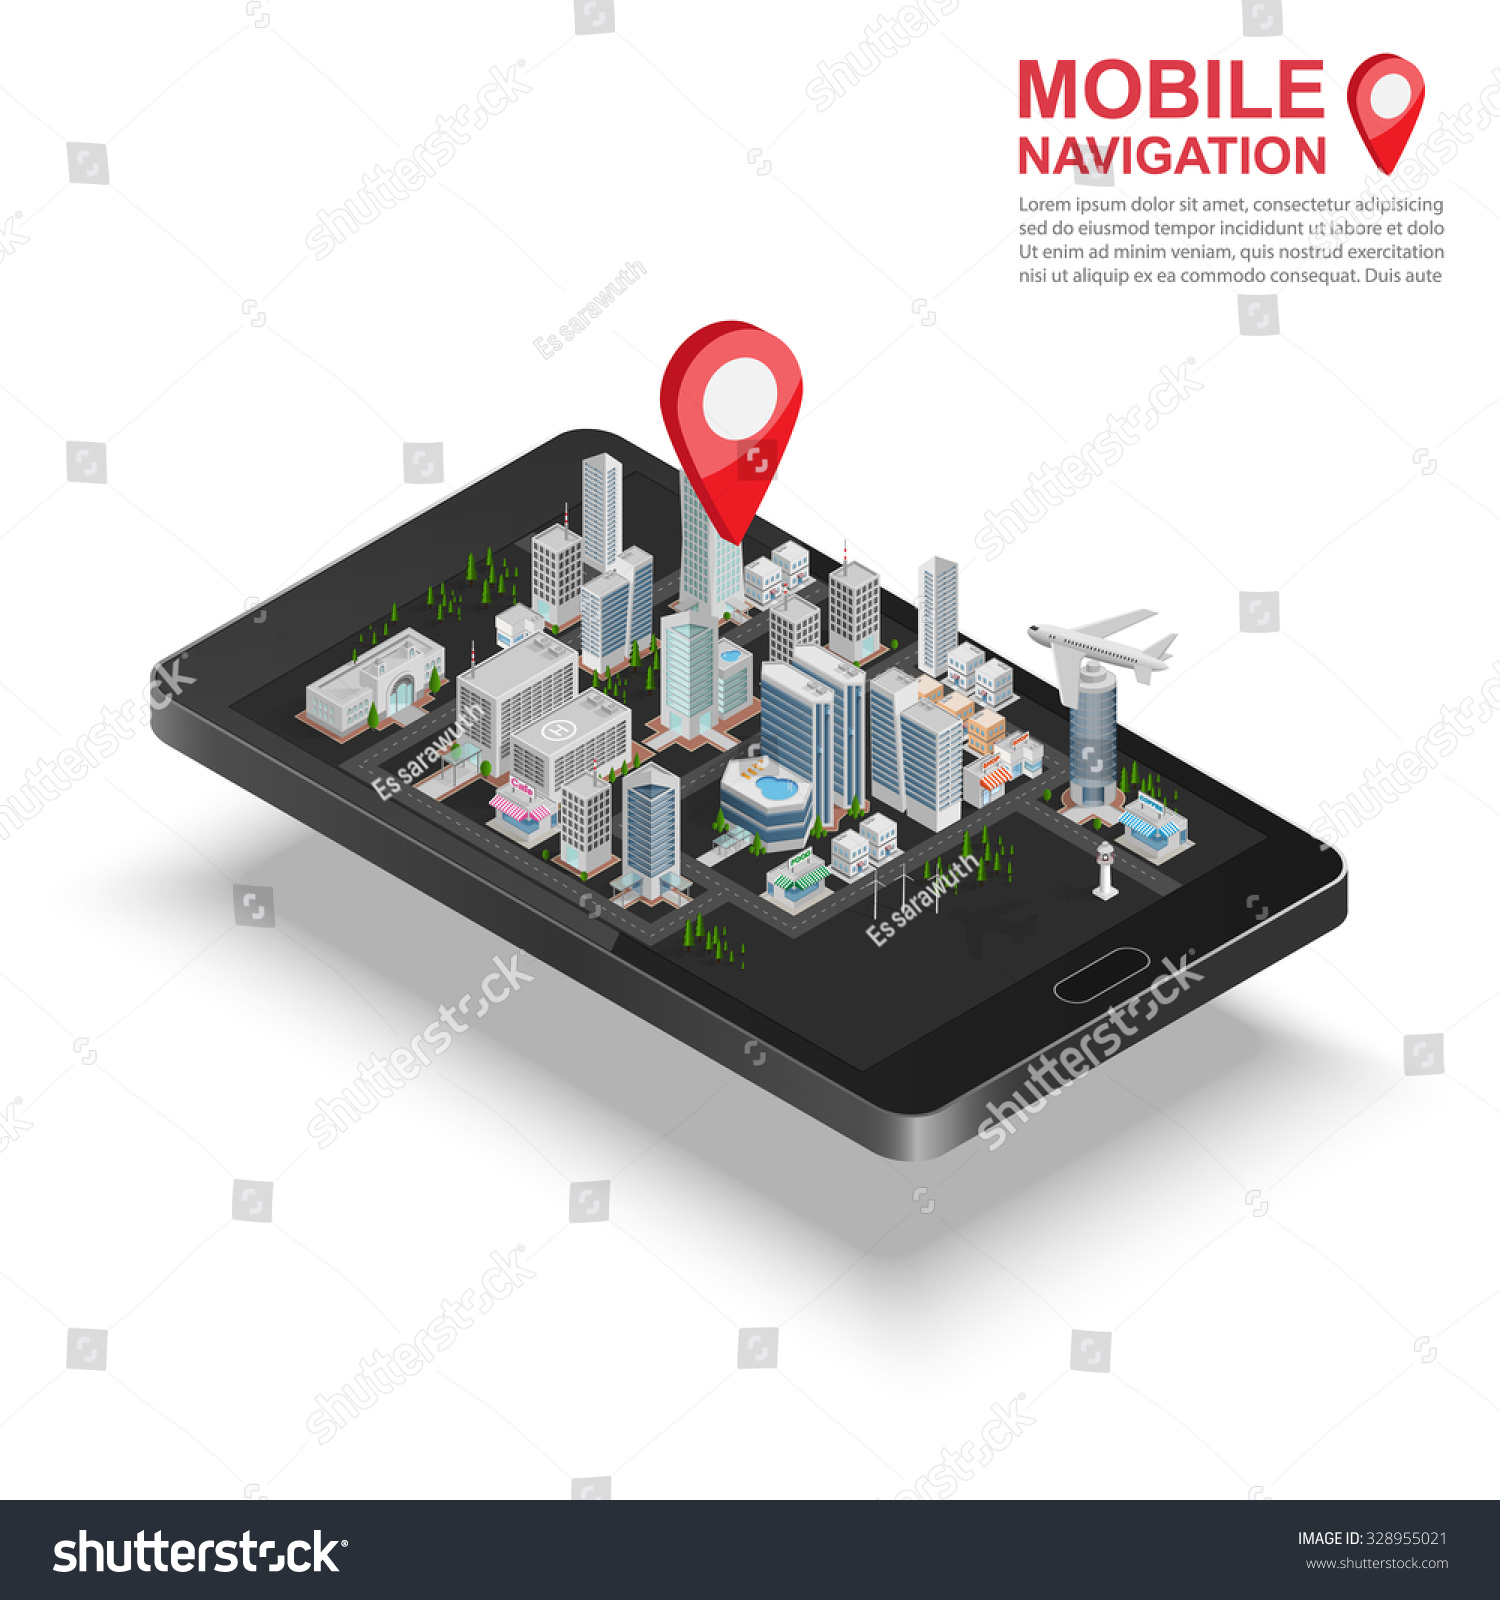 3 D Isometric Mobile Gps Navigation Concept Stock Vector Royalty Circuit Diagram Notation On Electronic Symbols 3d Smartphone With City Map Application And Marker Pin Pointer